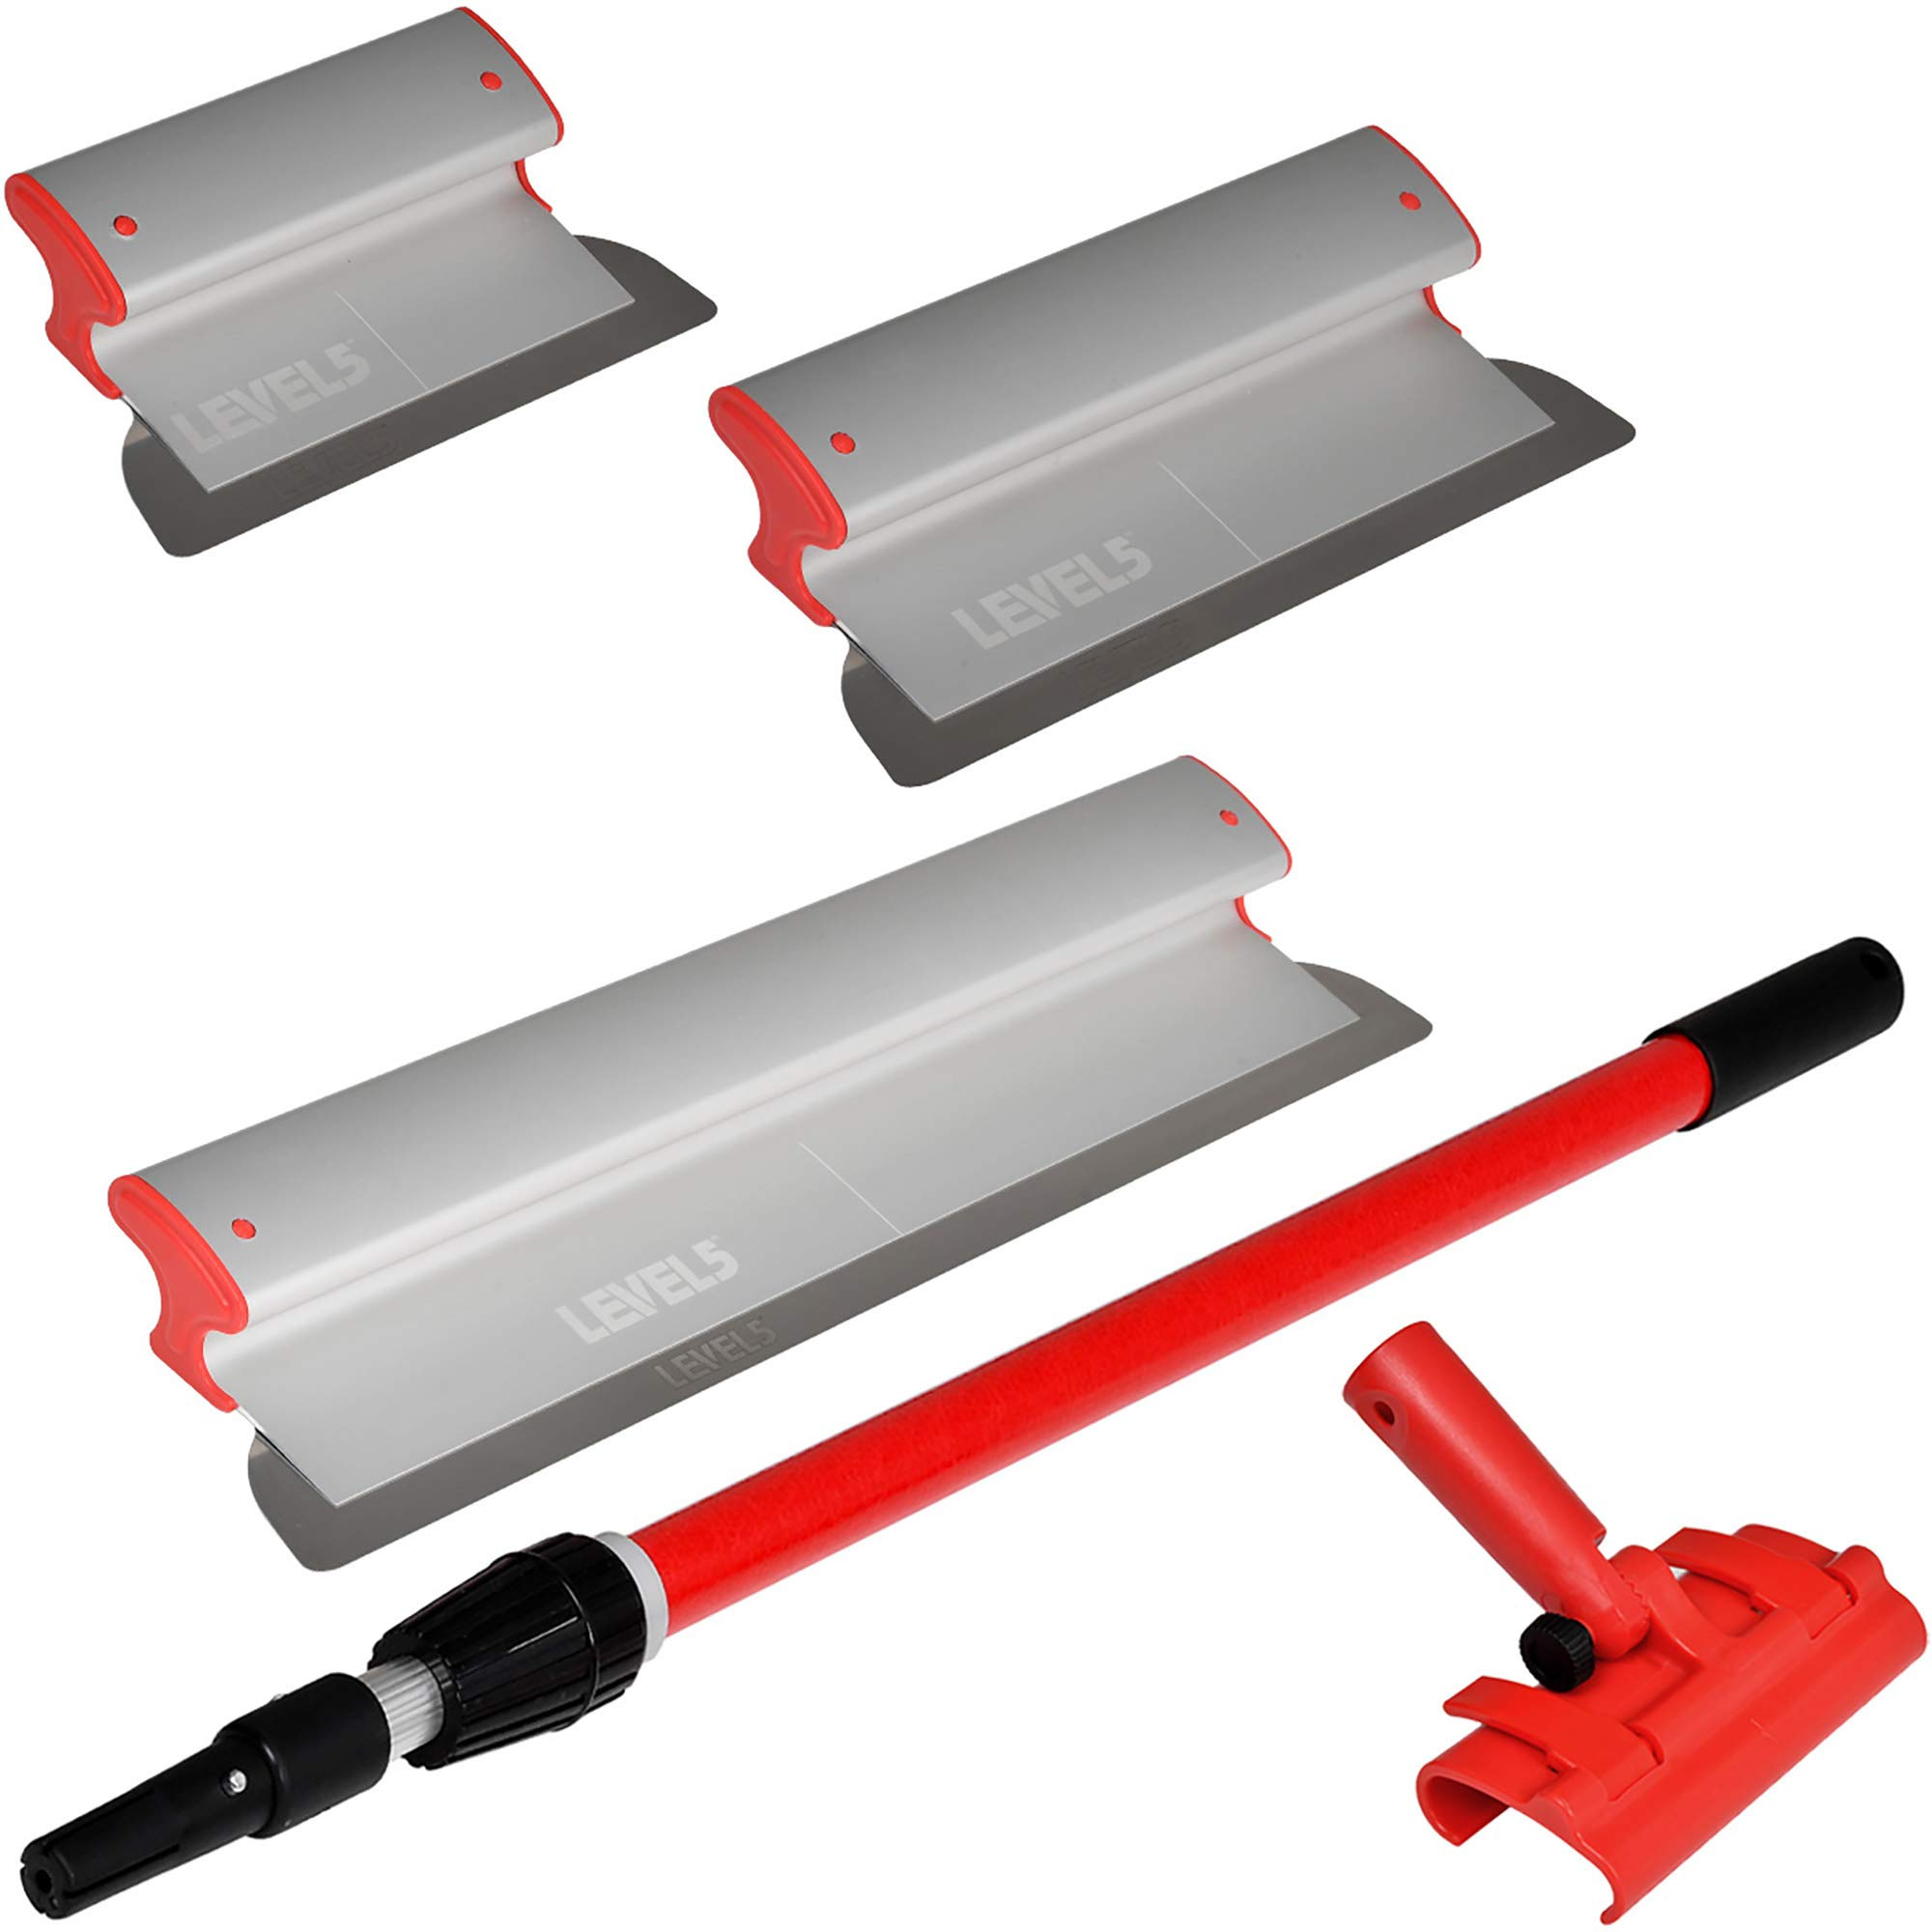 Drywall Skimming Blade Set - 10'', 16'' & 24'' Blades + 37'' - 63'' Extension Handle | LEVEL5 | Pro-Grade | Extruded Aluminum & European Stainless Steel Construction | High-Impact End Caps | 5-440 by Level5